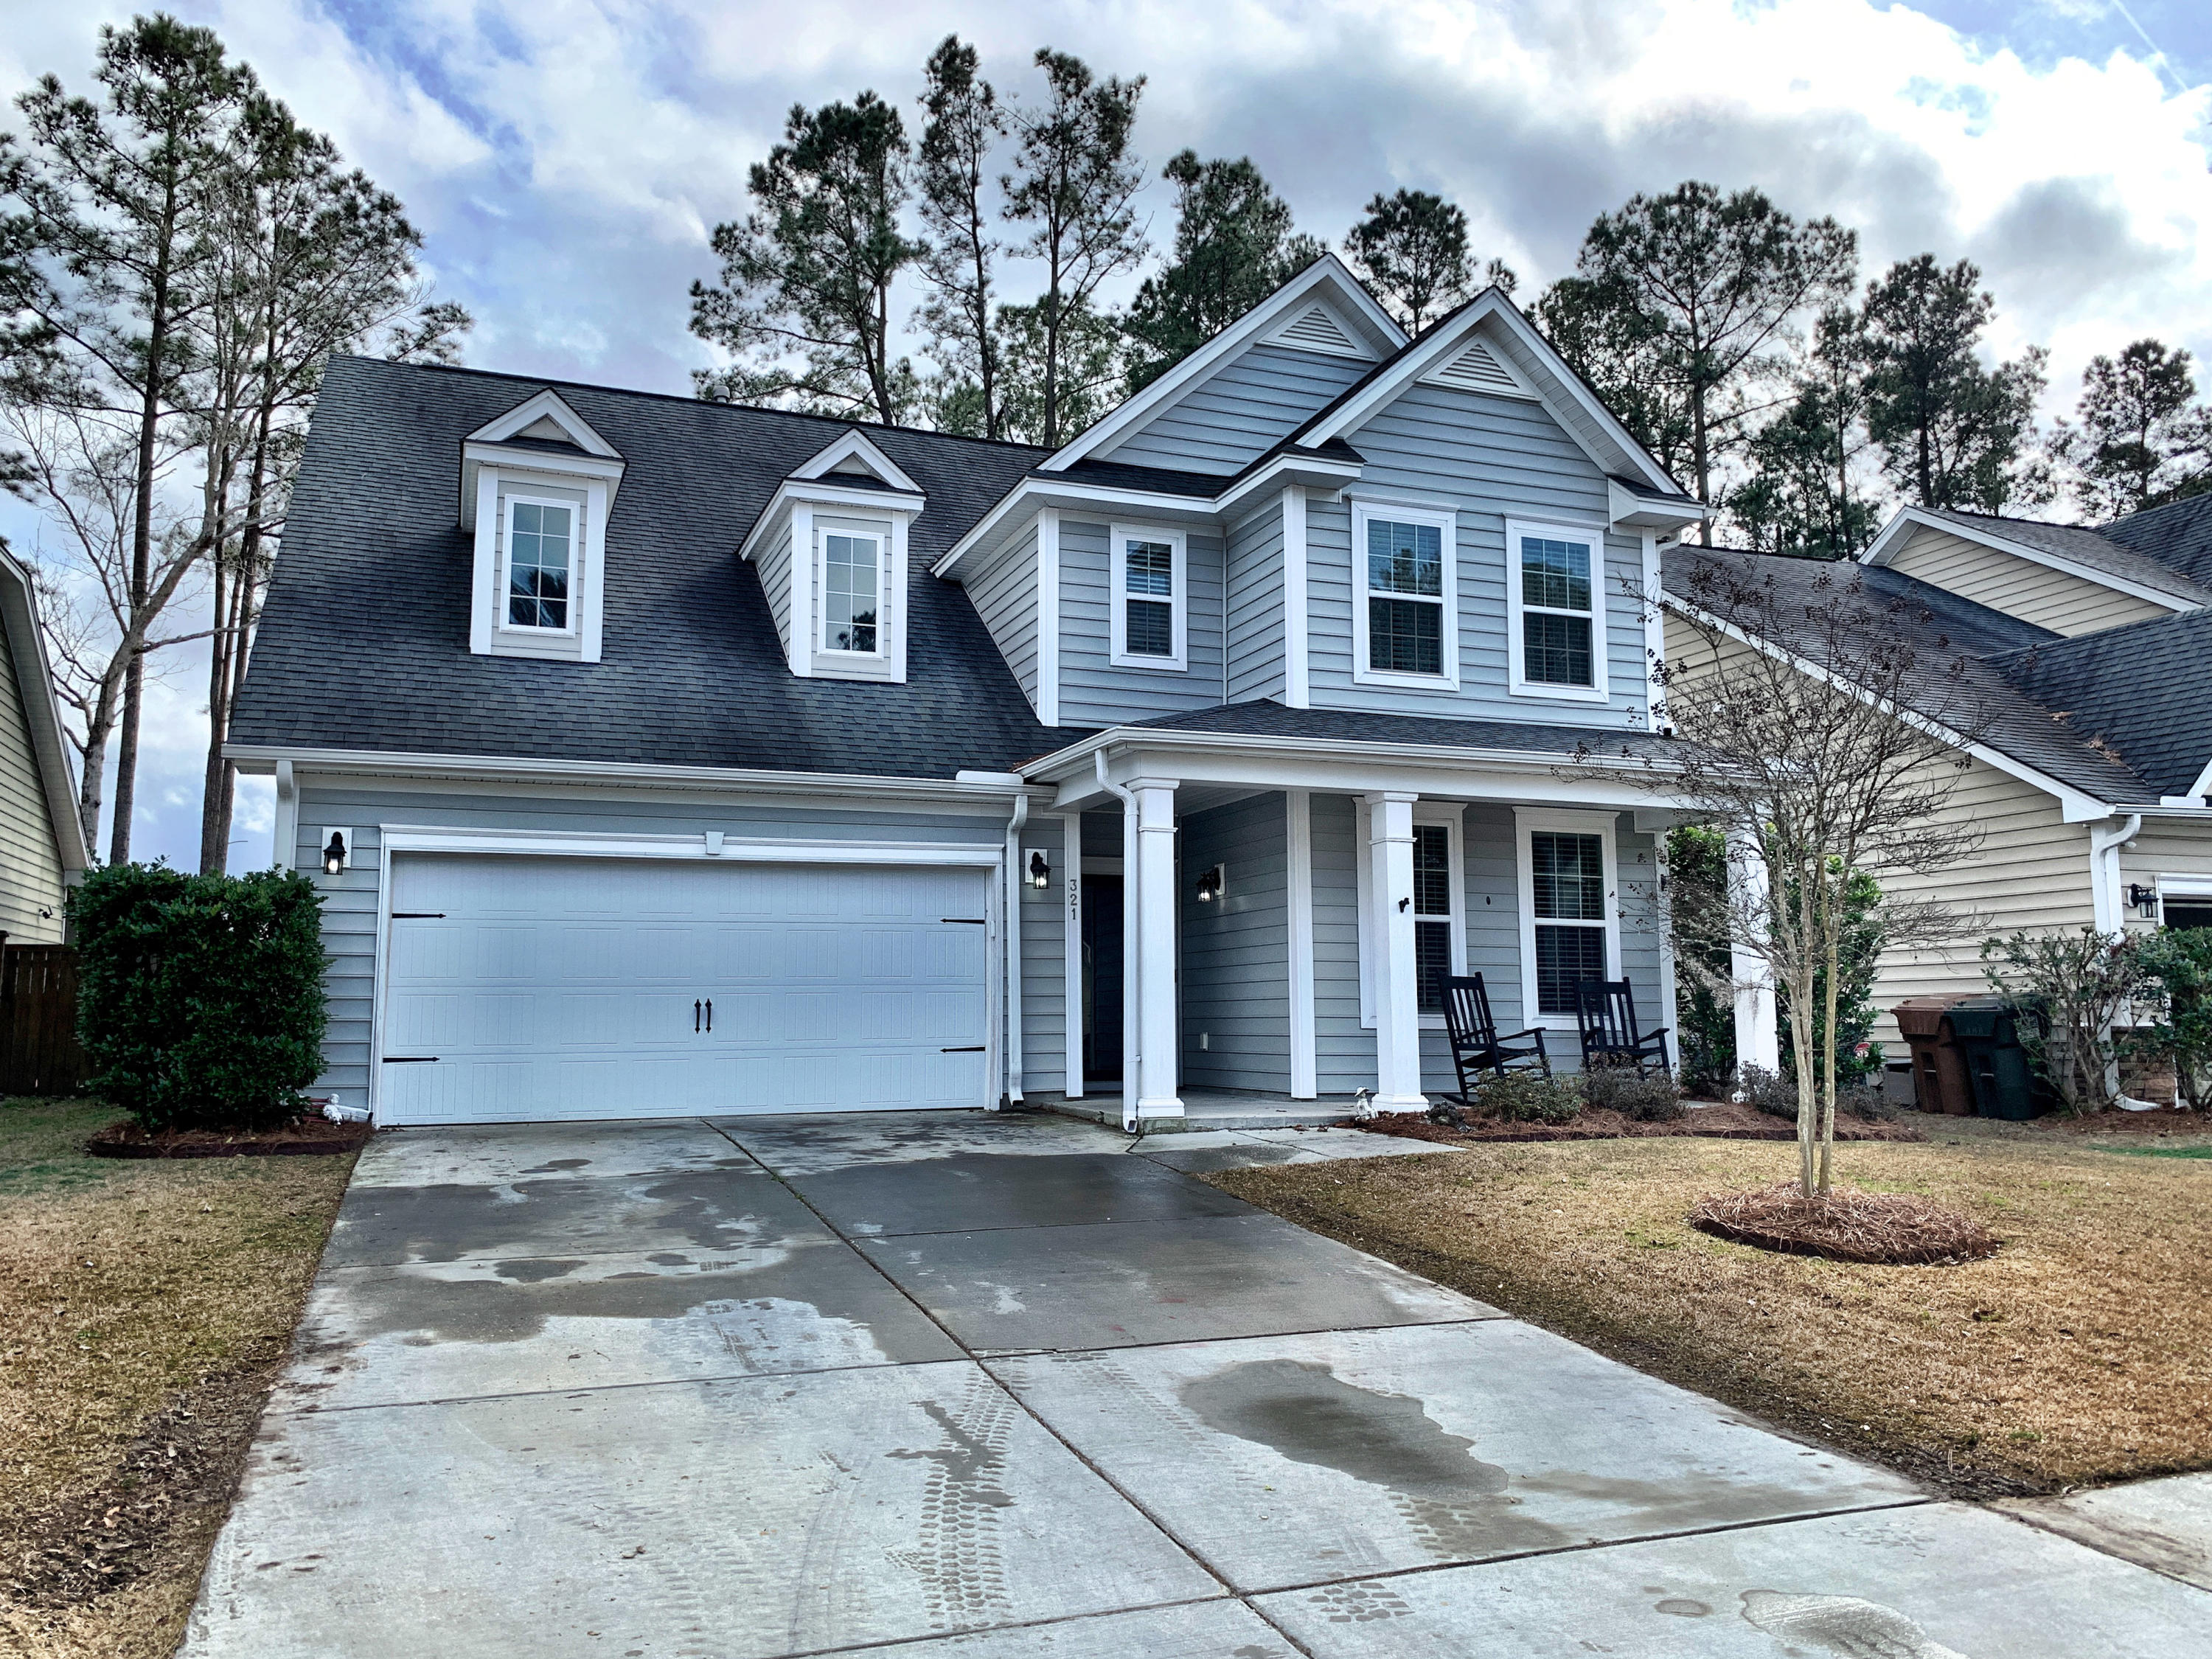 321 Freeland Way Moncks Corner, Sc 29461